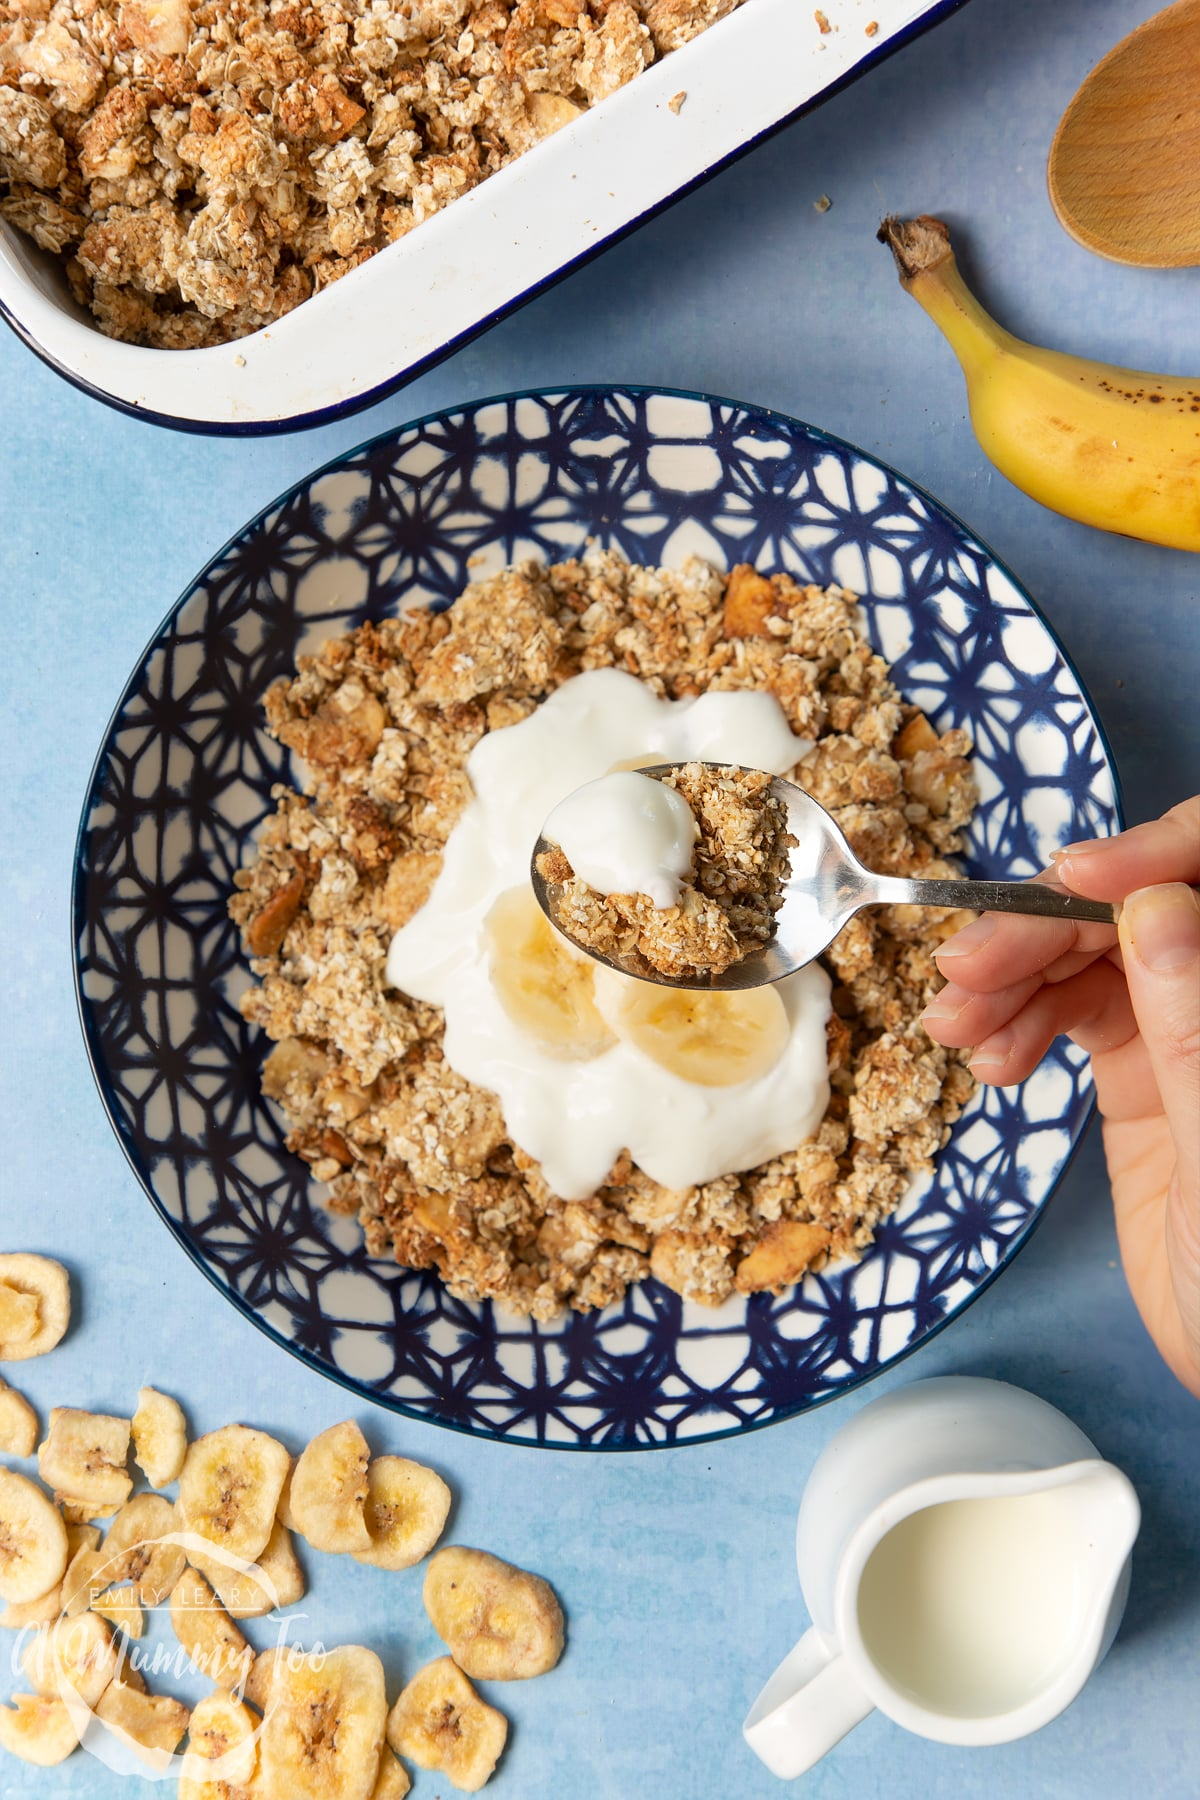 Banana coconut granola served in a blue and white bowl, topped with yogurt and banana. A spoon lifts granola from the bowl.